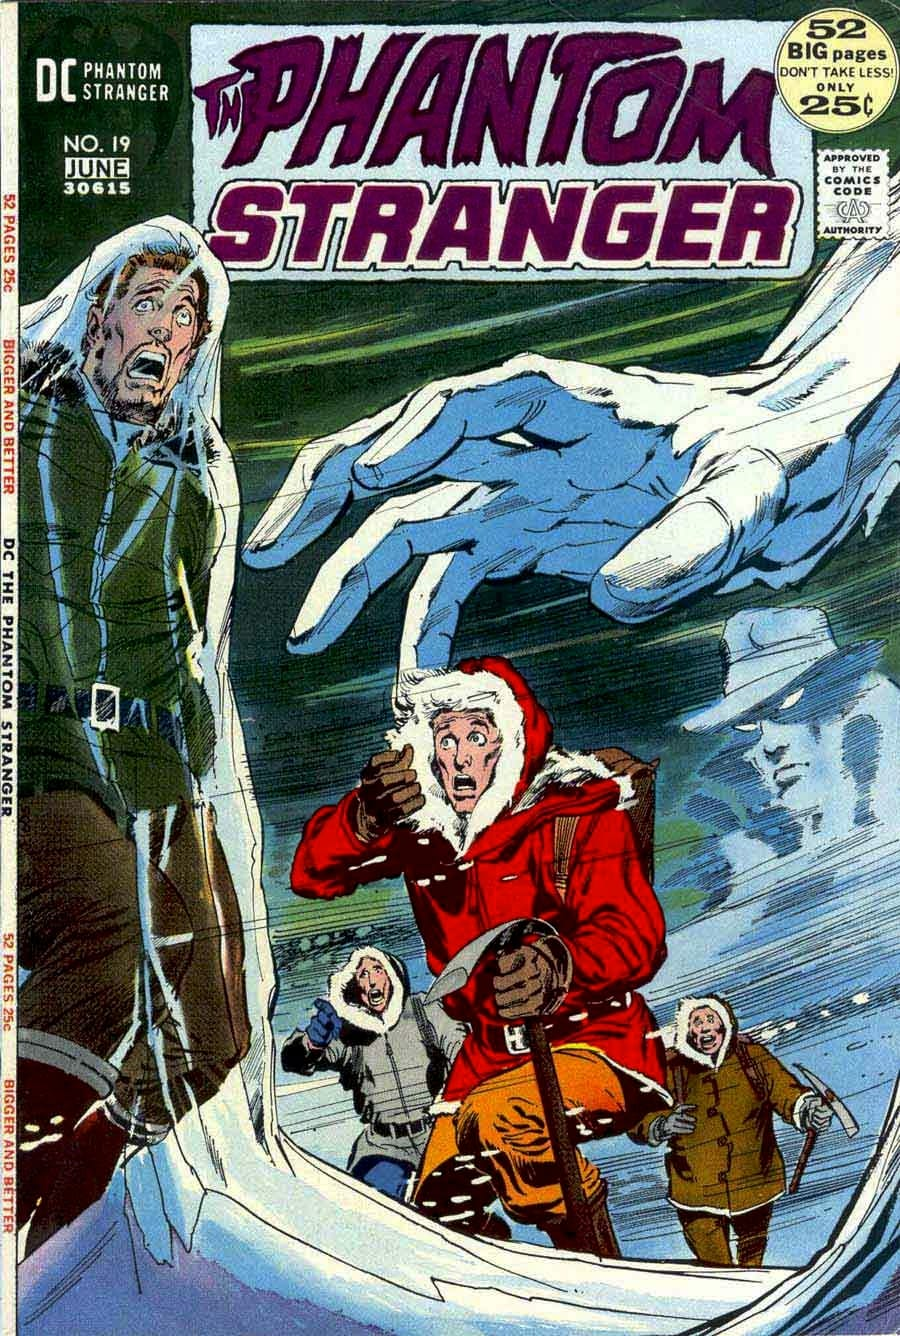 Phantom Stranger #19 - 1970s dc horror comic book cover art by Neal Adams